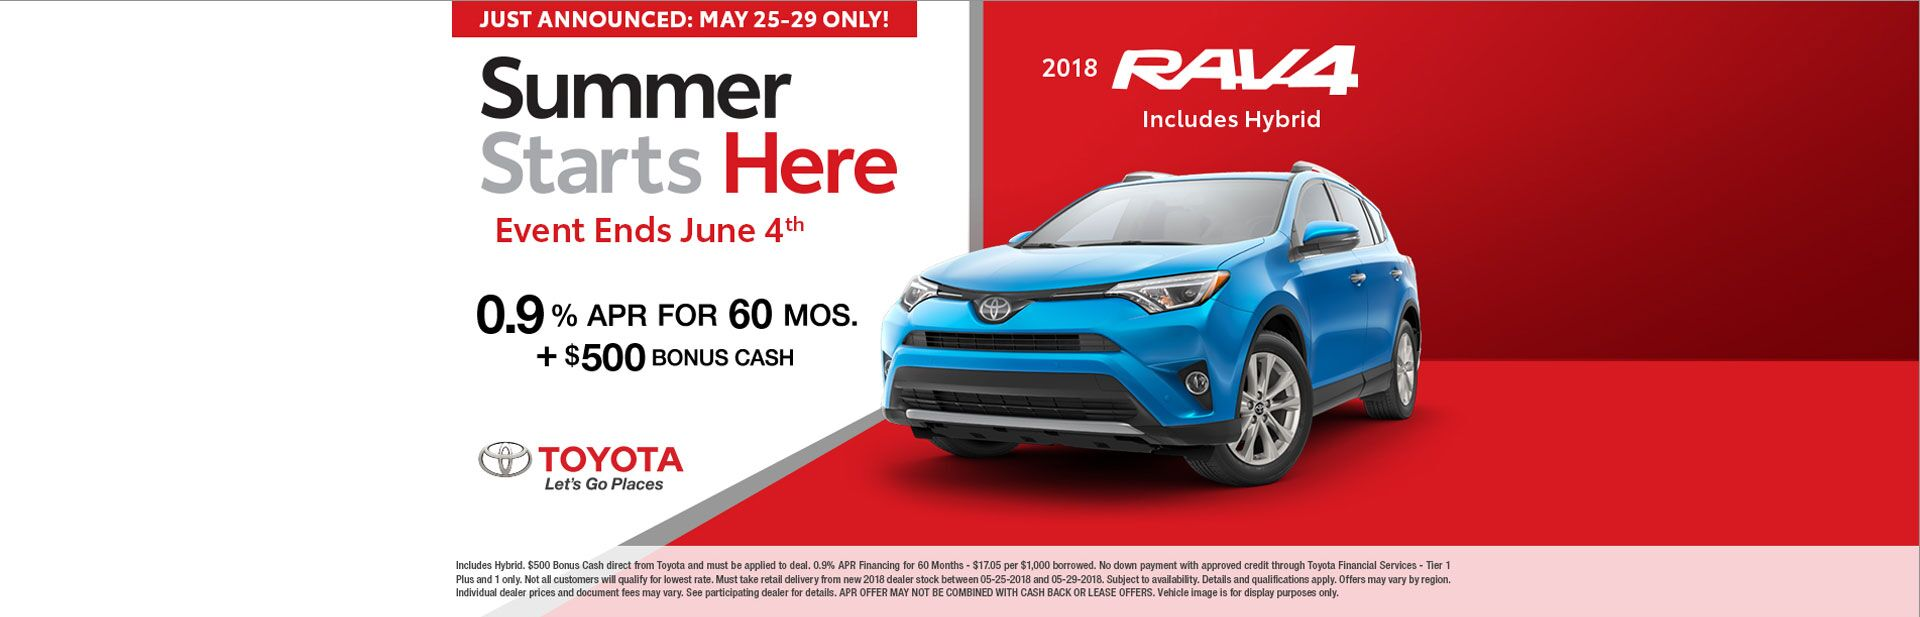 $500 Memorial Day BONUS CASH on 2018 RAV4!